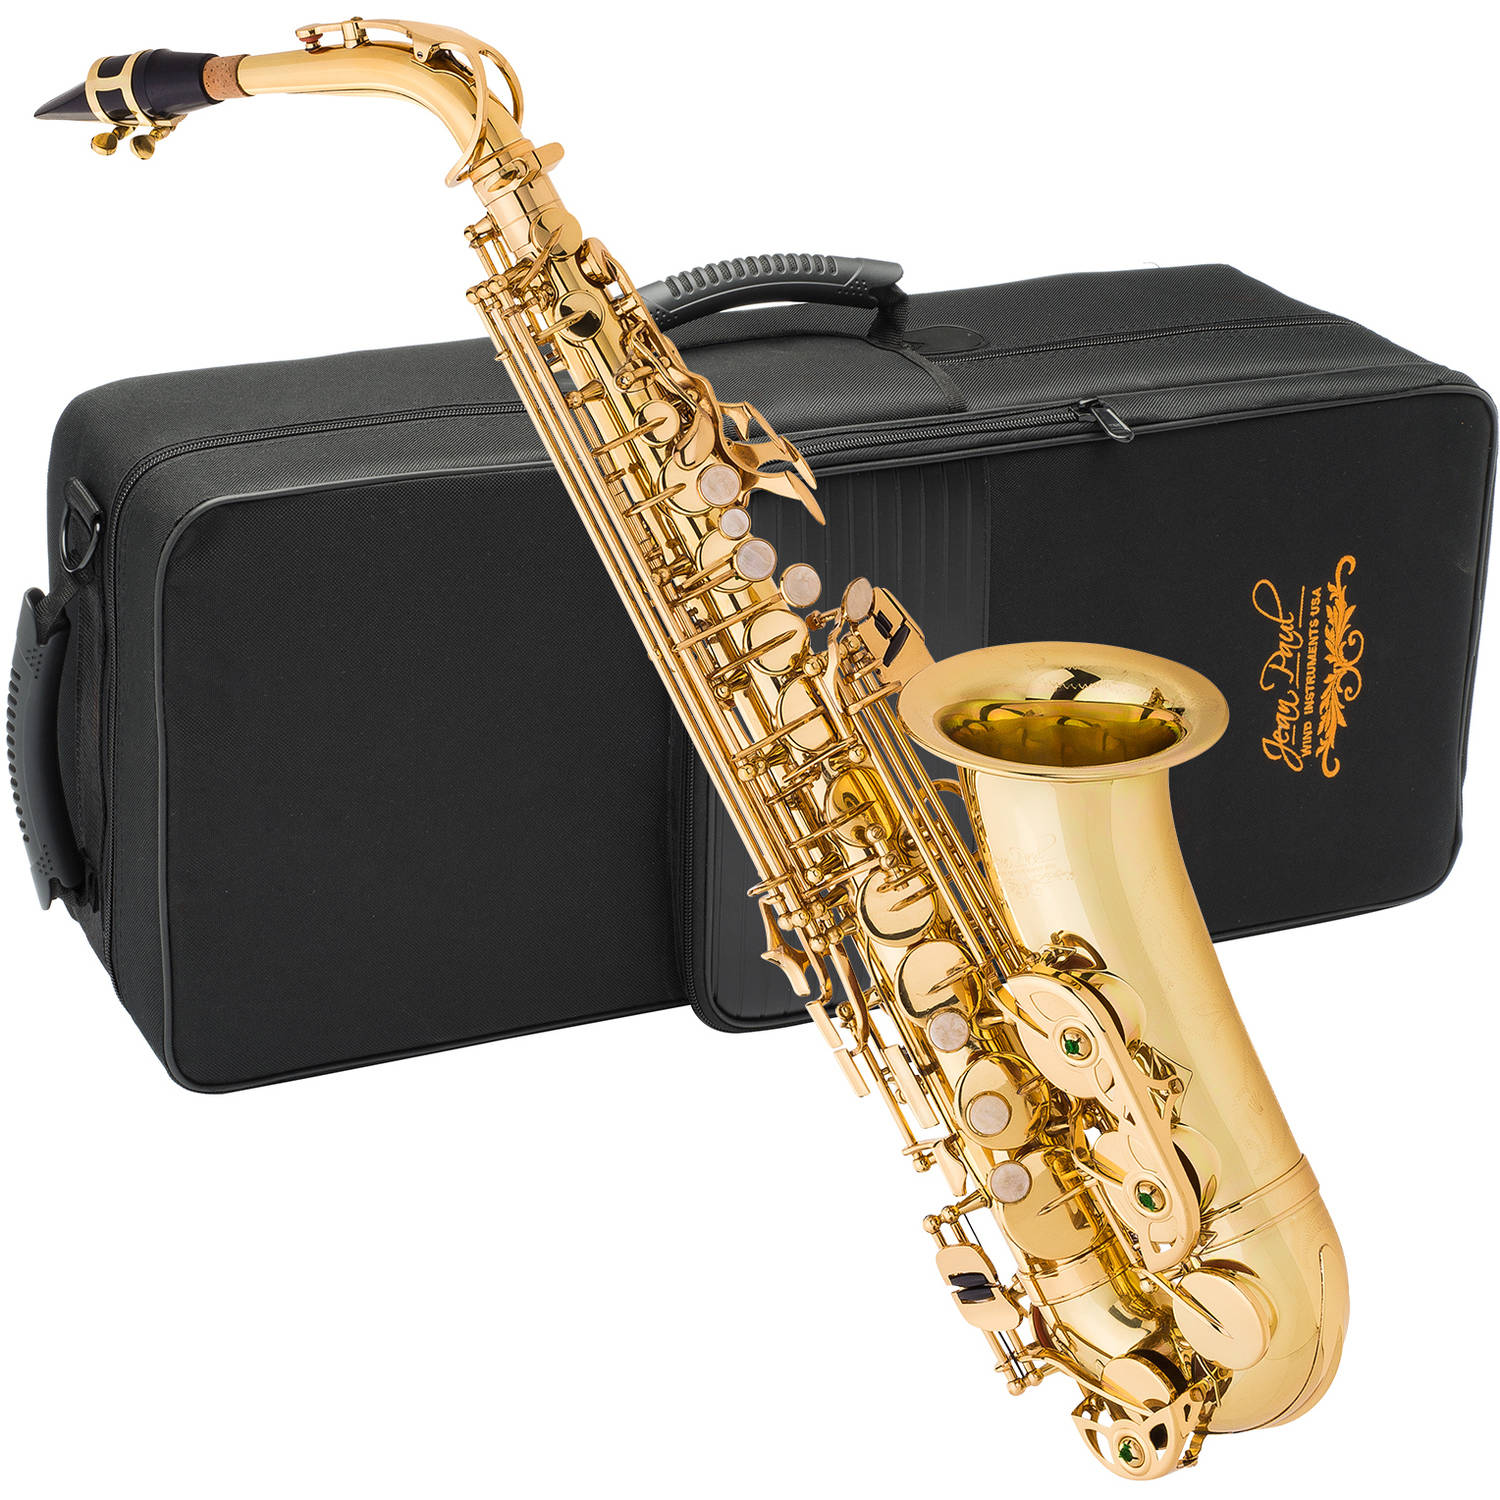 Jean Paul AS-400 Alto Saxophone with Case by Generic